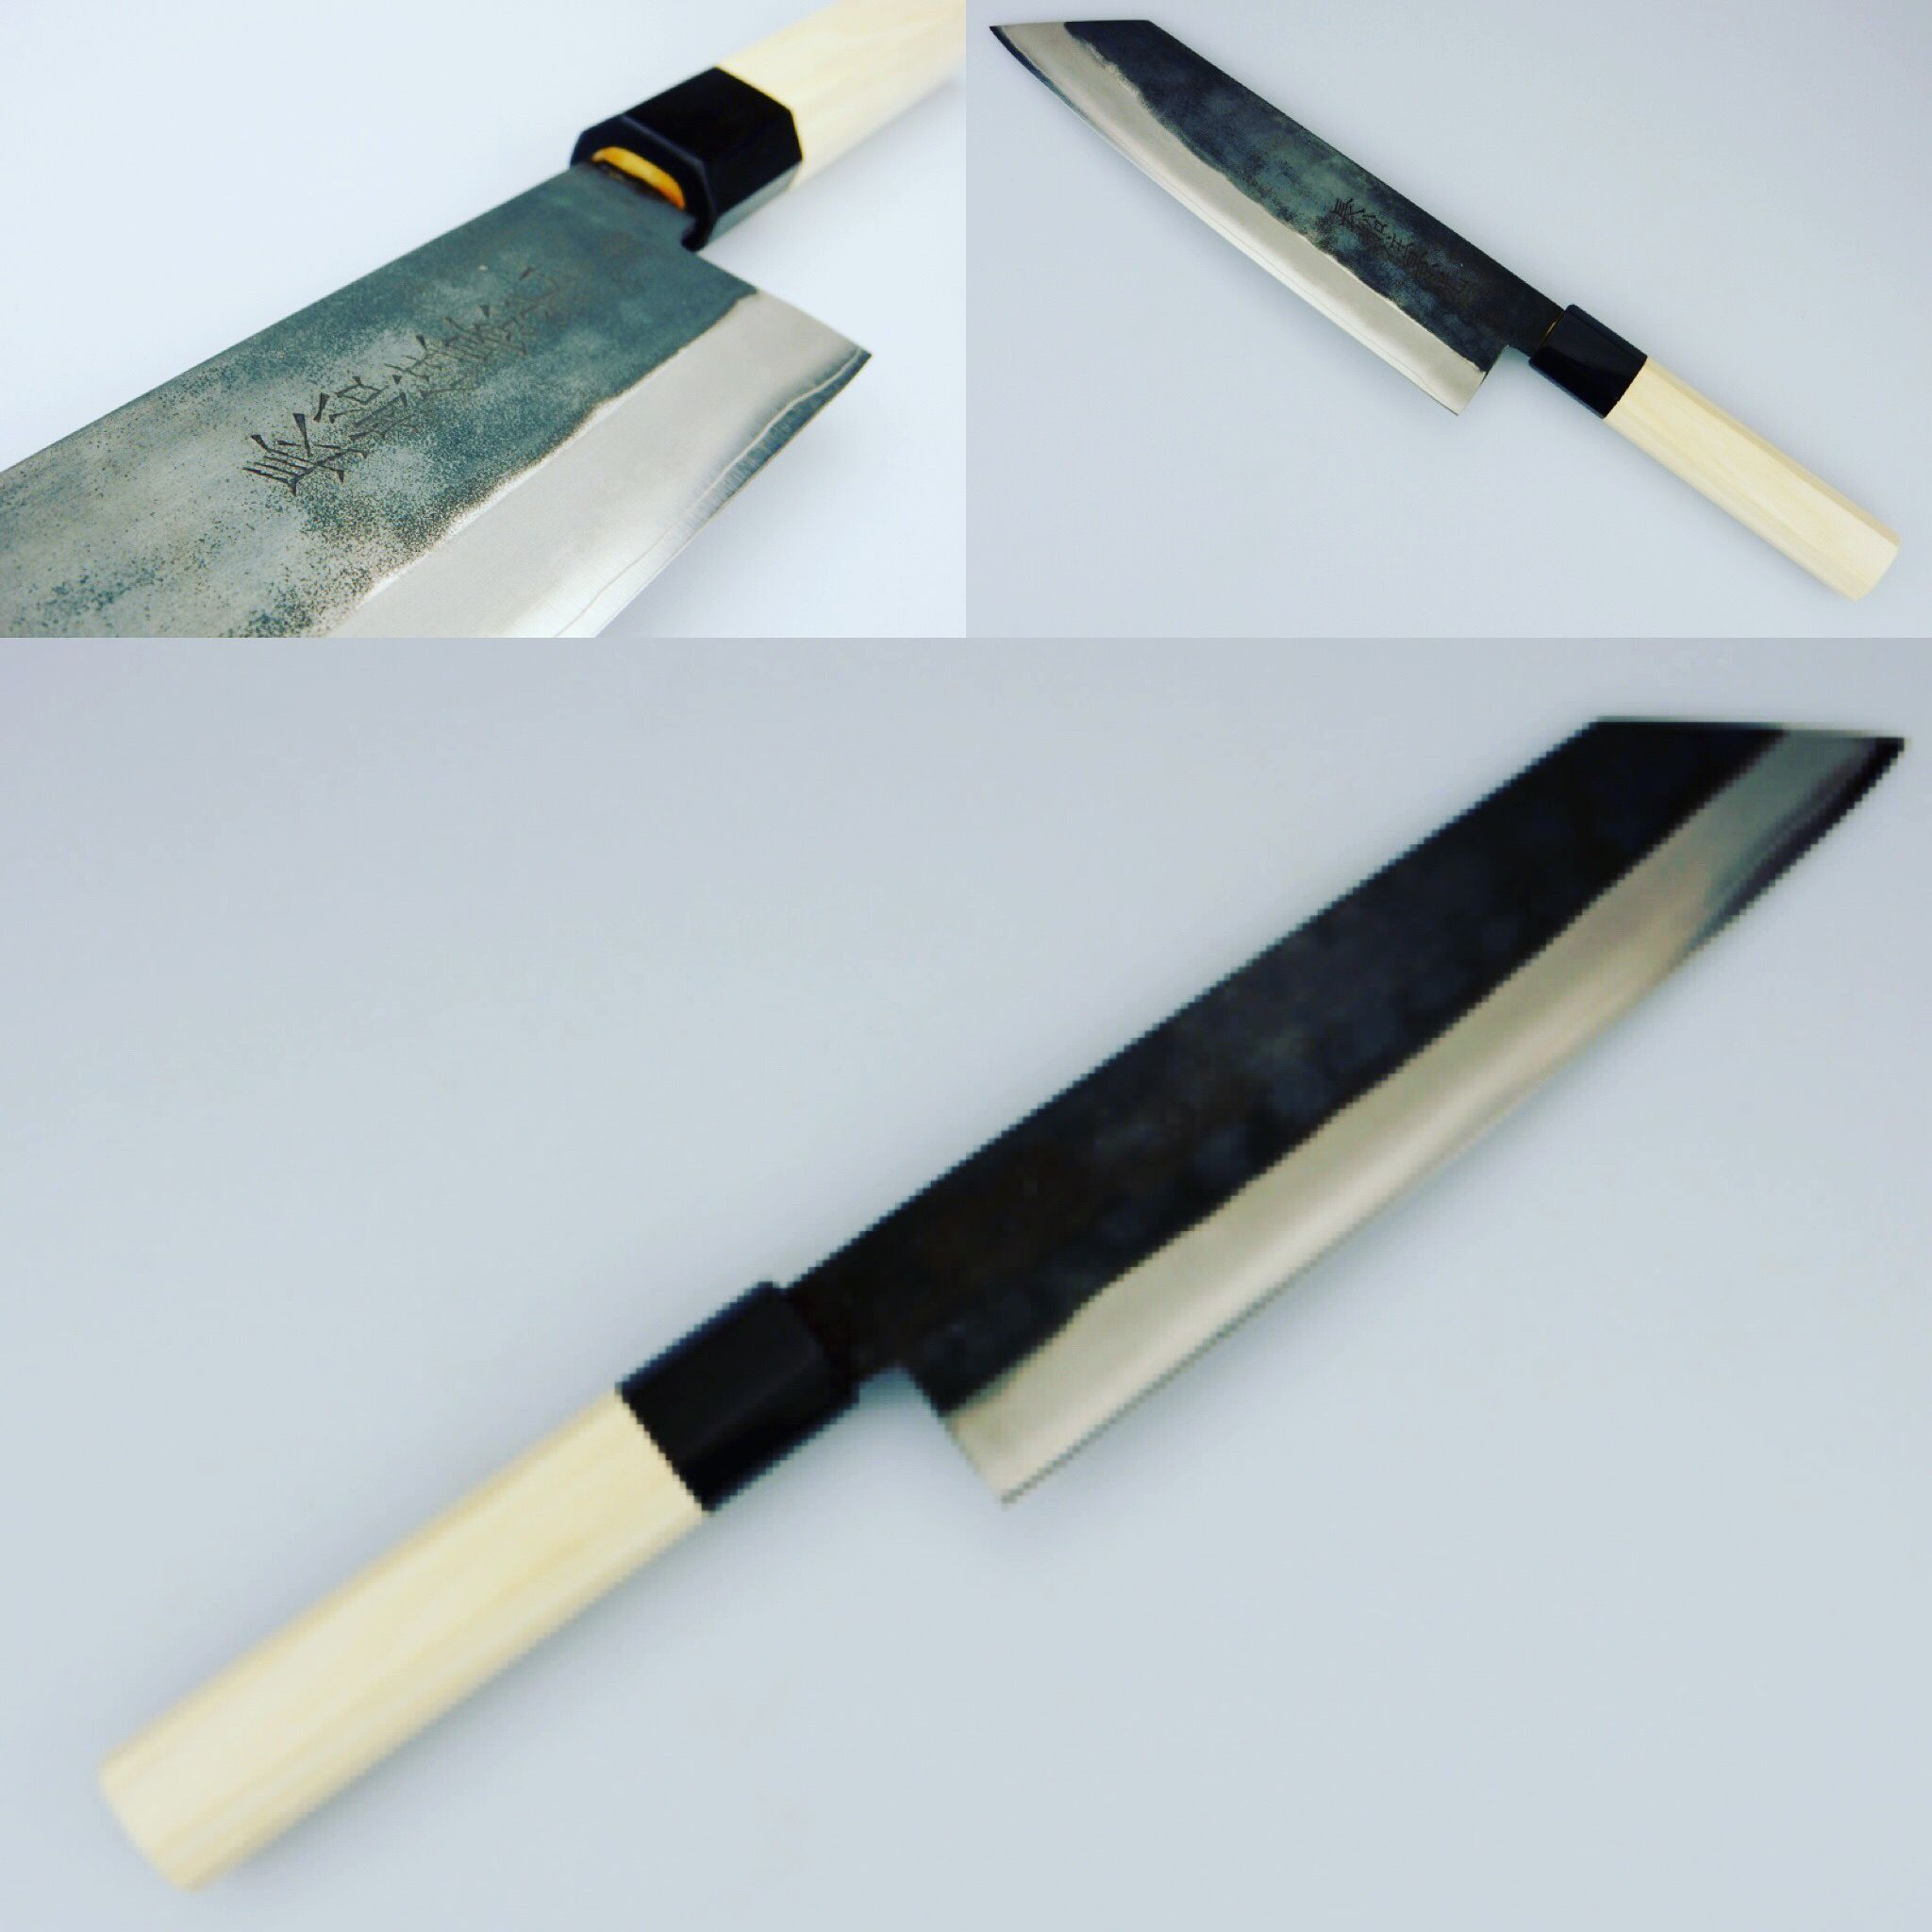 Kagemitsu Bunka, made from ZDP-189 steel. Handforged by our master ...